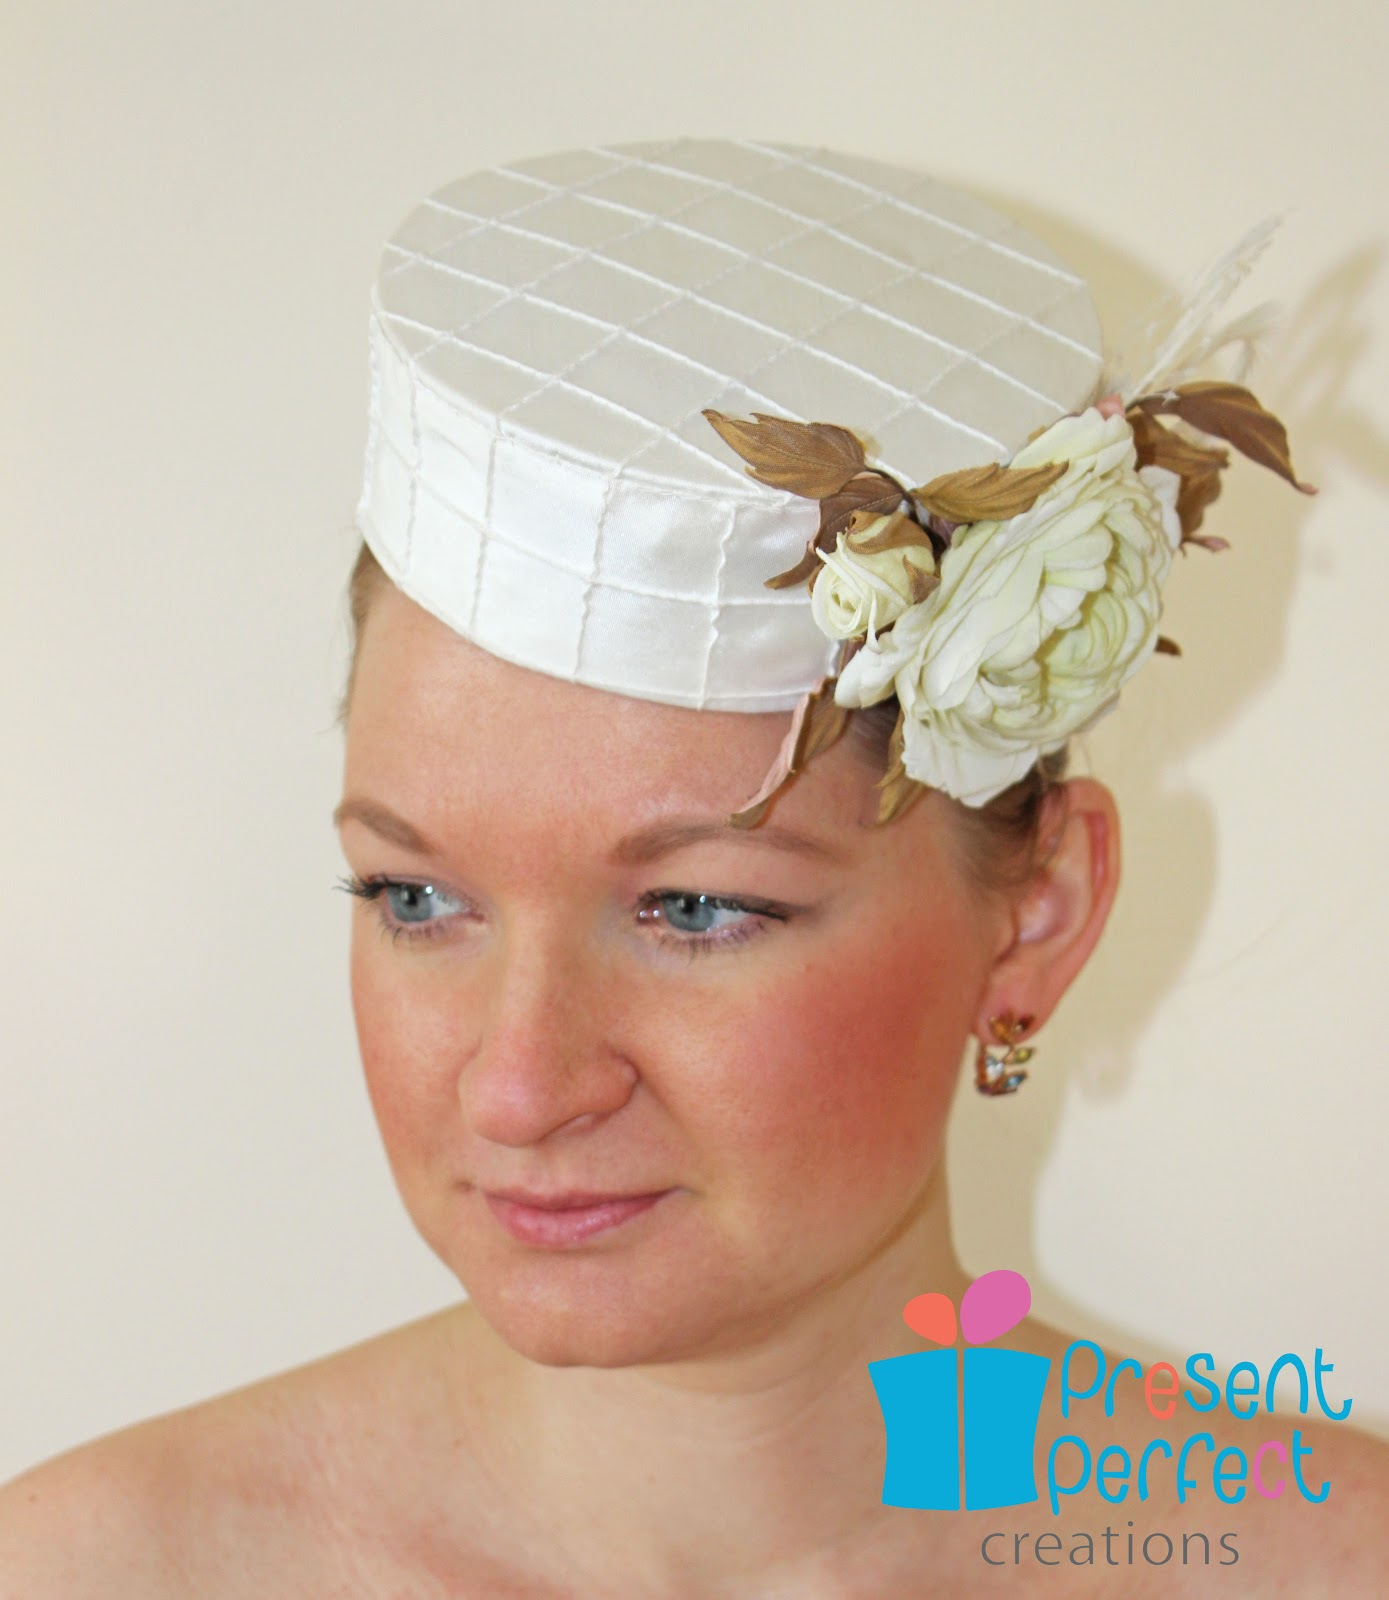 Present Perfect Creations: A pillbox hat with silk roses